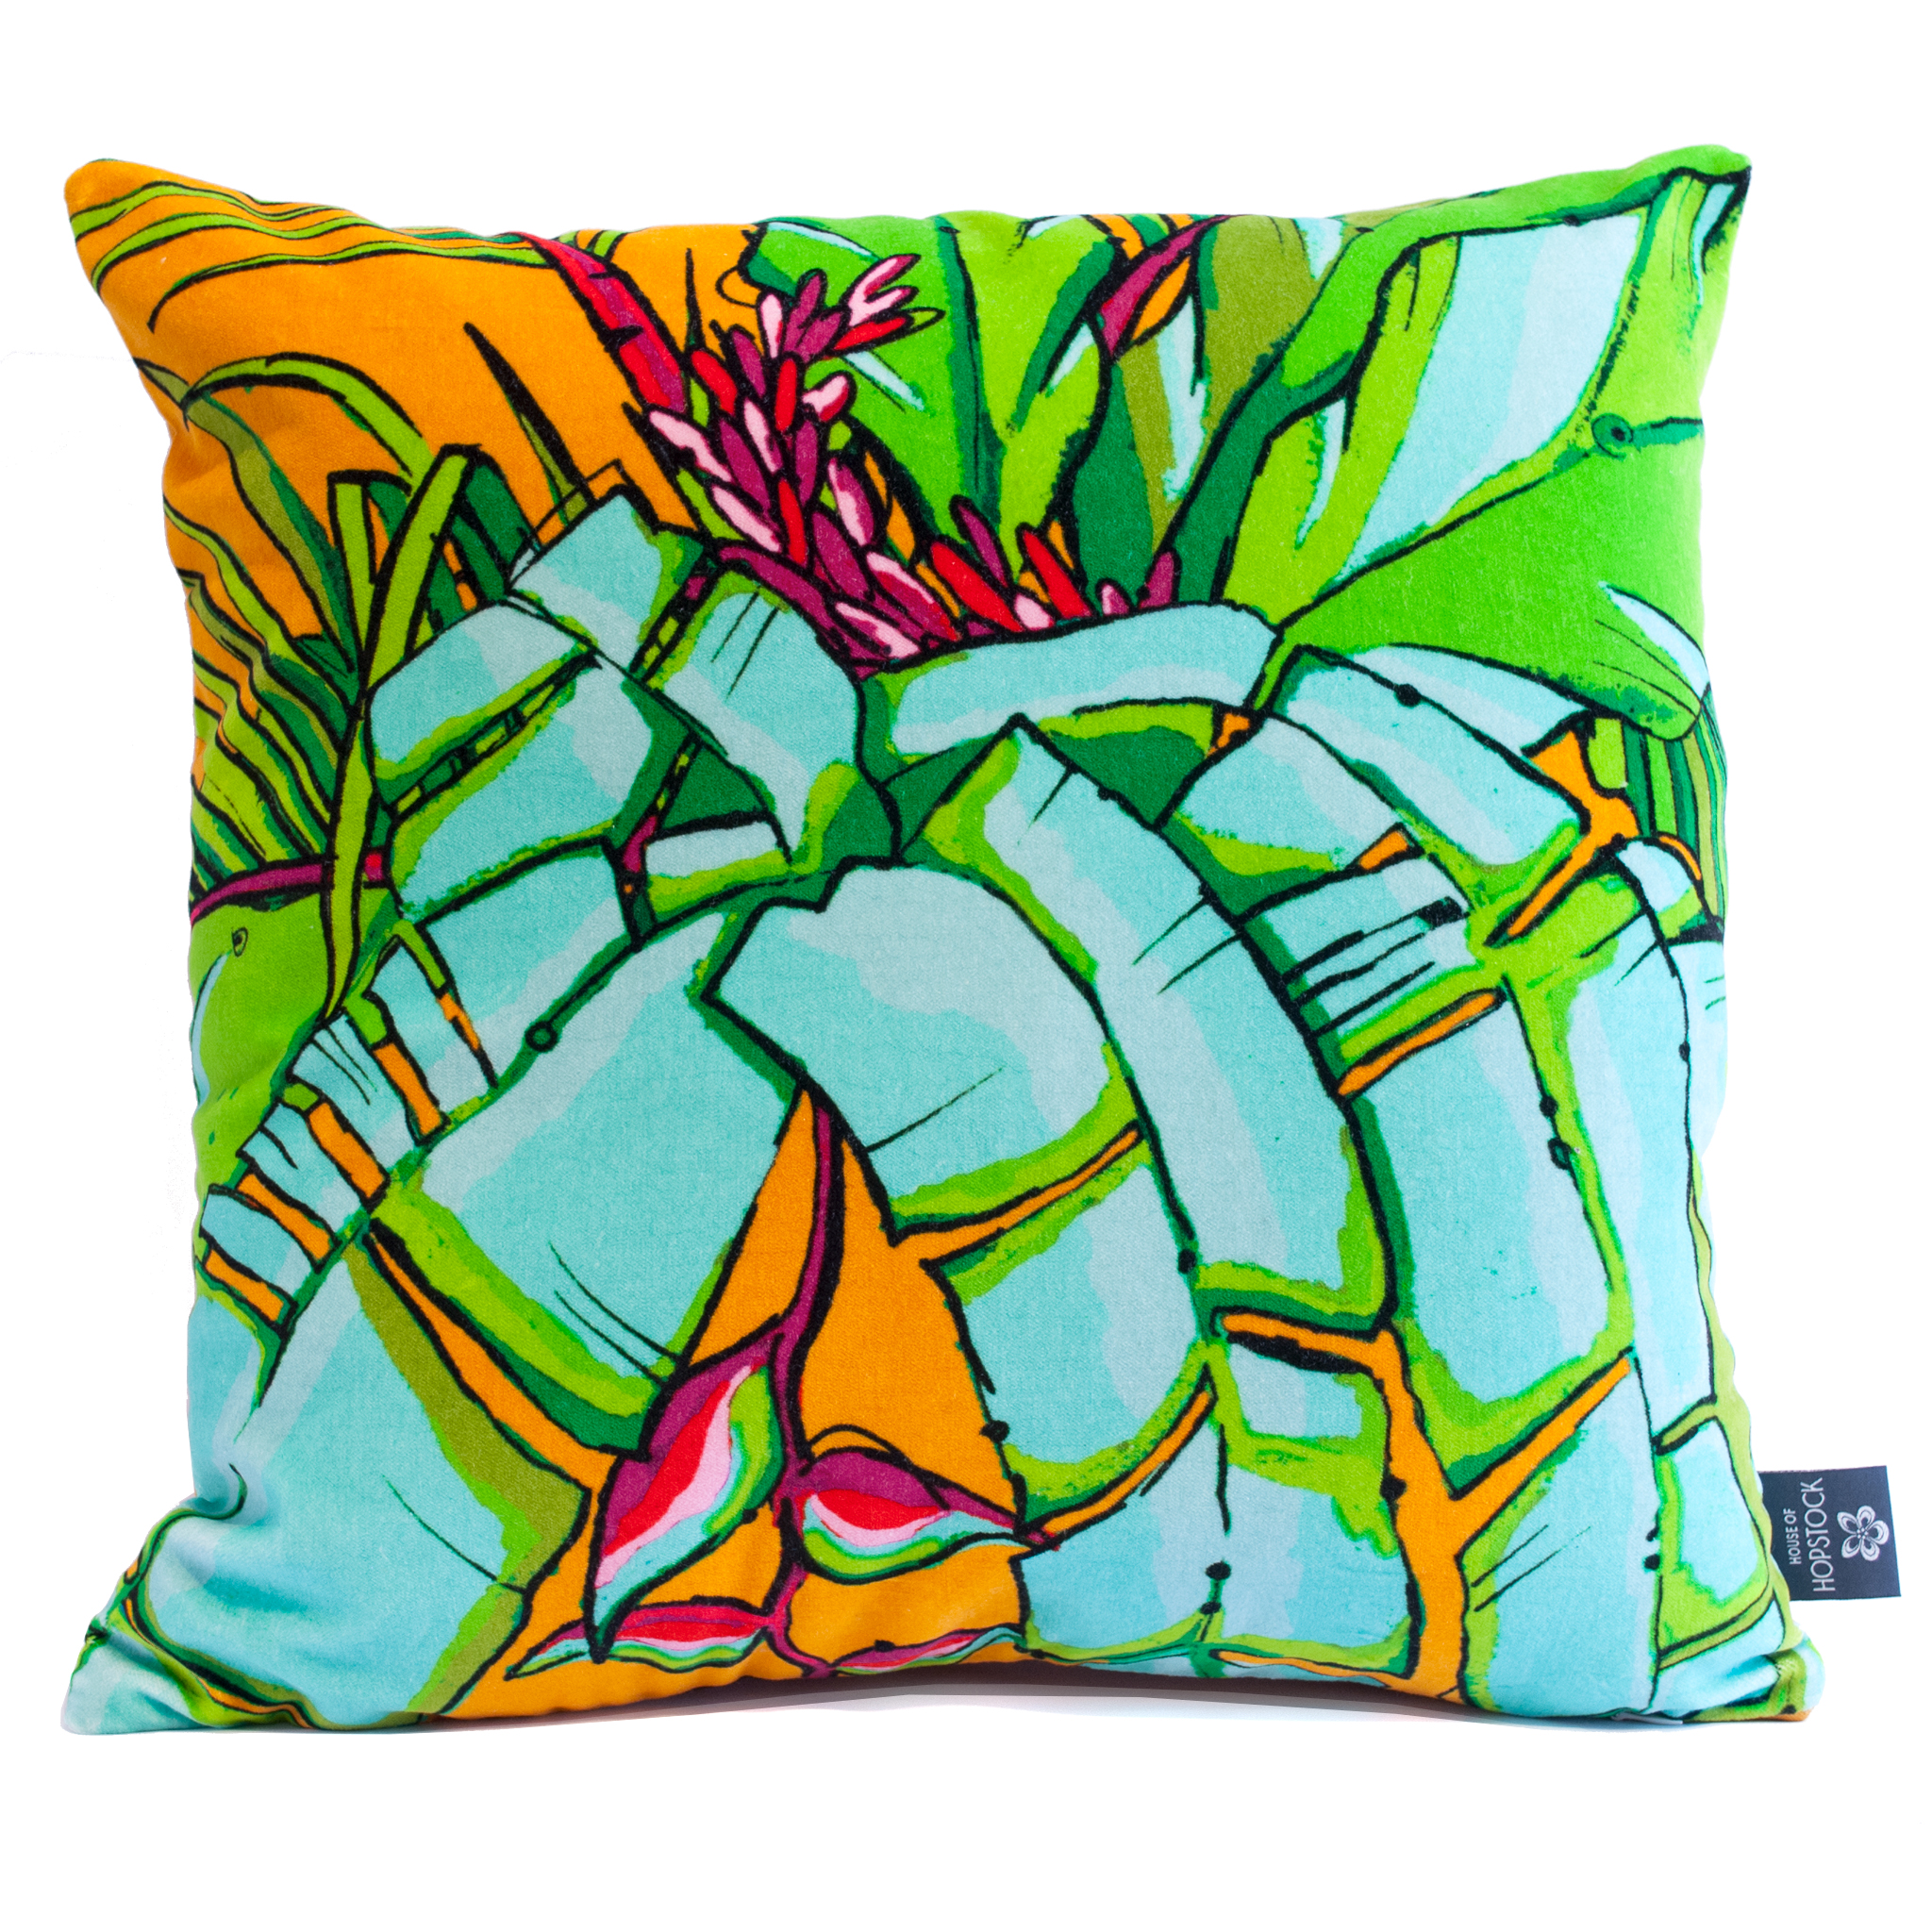 shangri la orange velvet cushion colourful print design aase hopstock